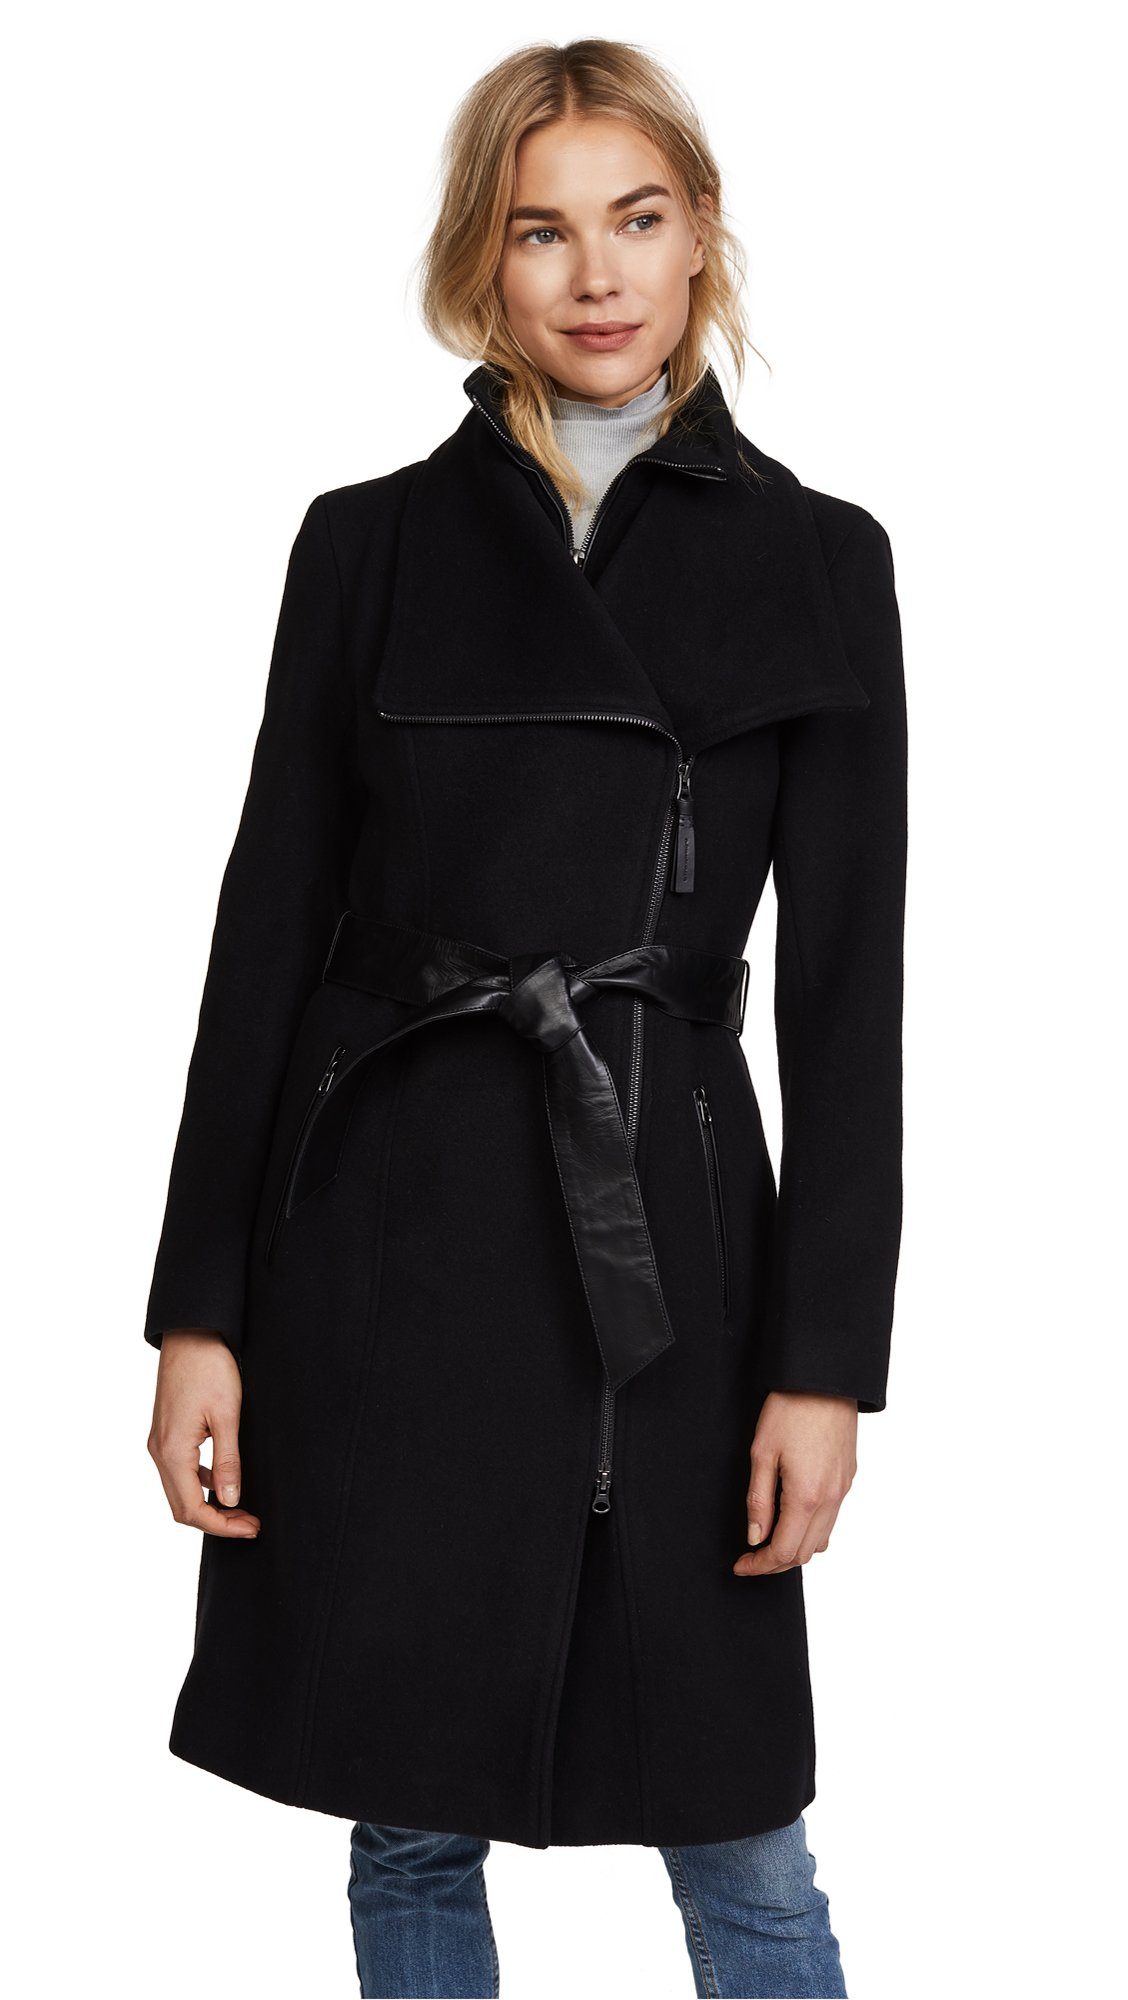 Mackage Women's Nori Belted Wool Coat with Leather Trim, Black, Large